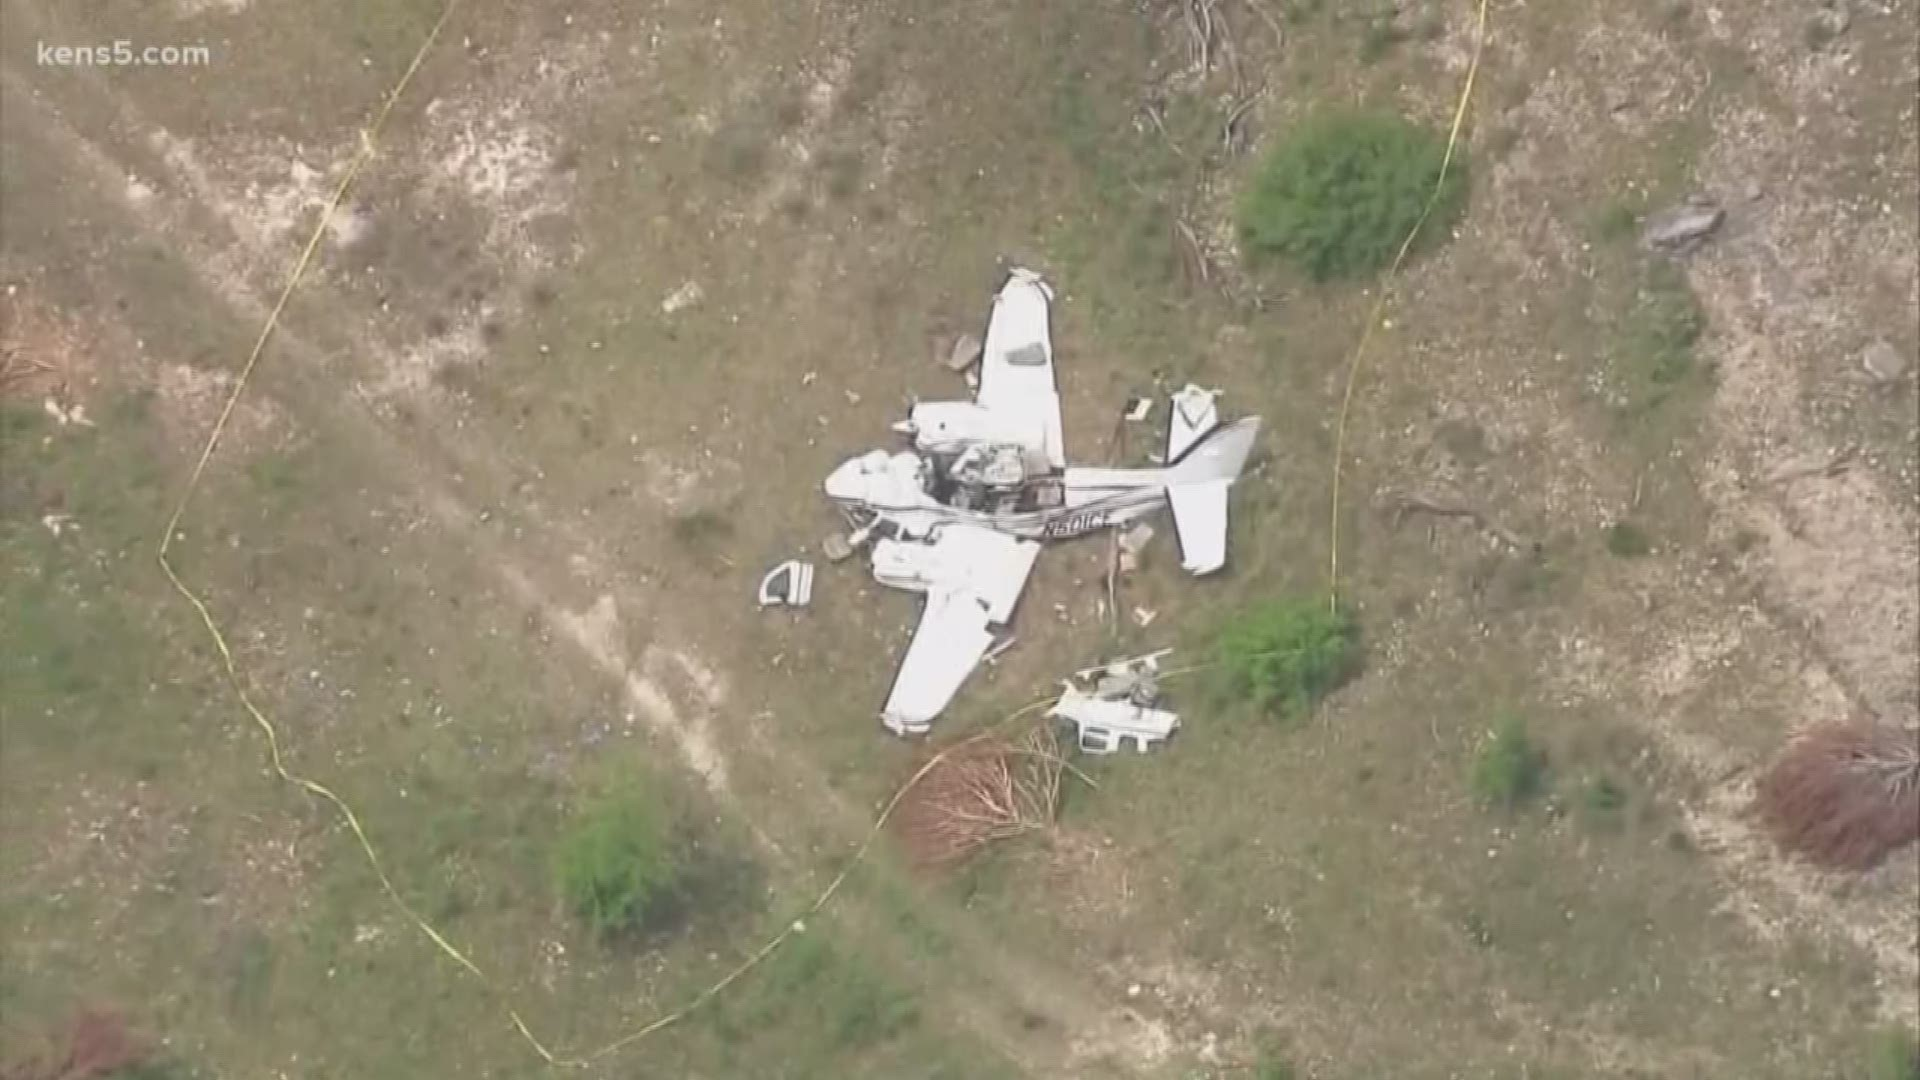 Victims Of Kerrville Plane Crash Identified Kens5 Com